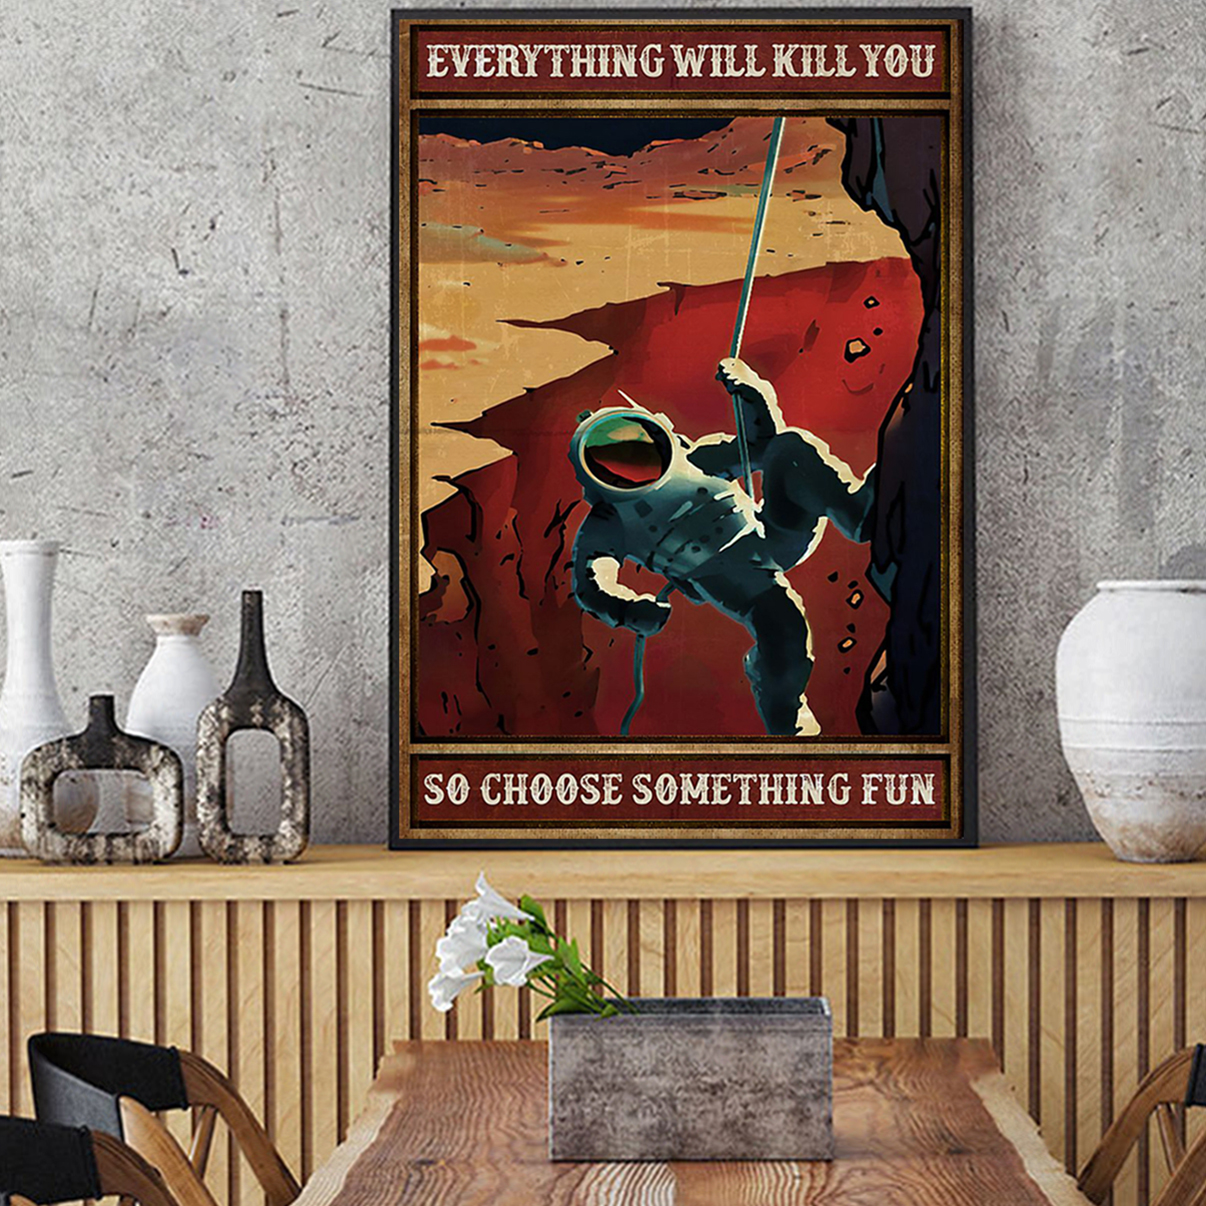 Space everything will kill you so choose something fun poster A2